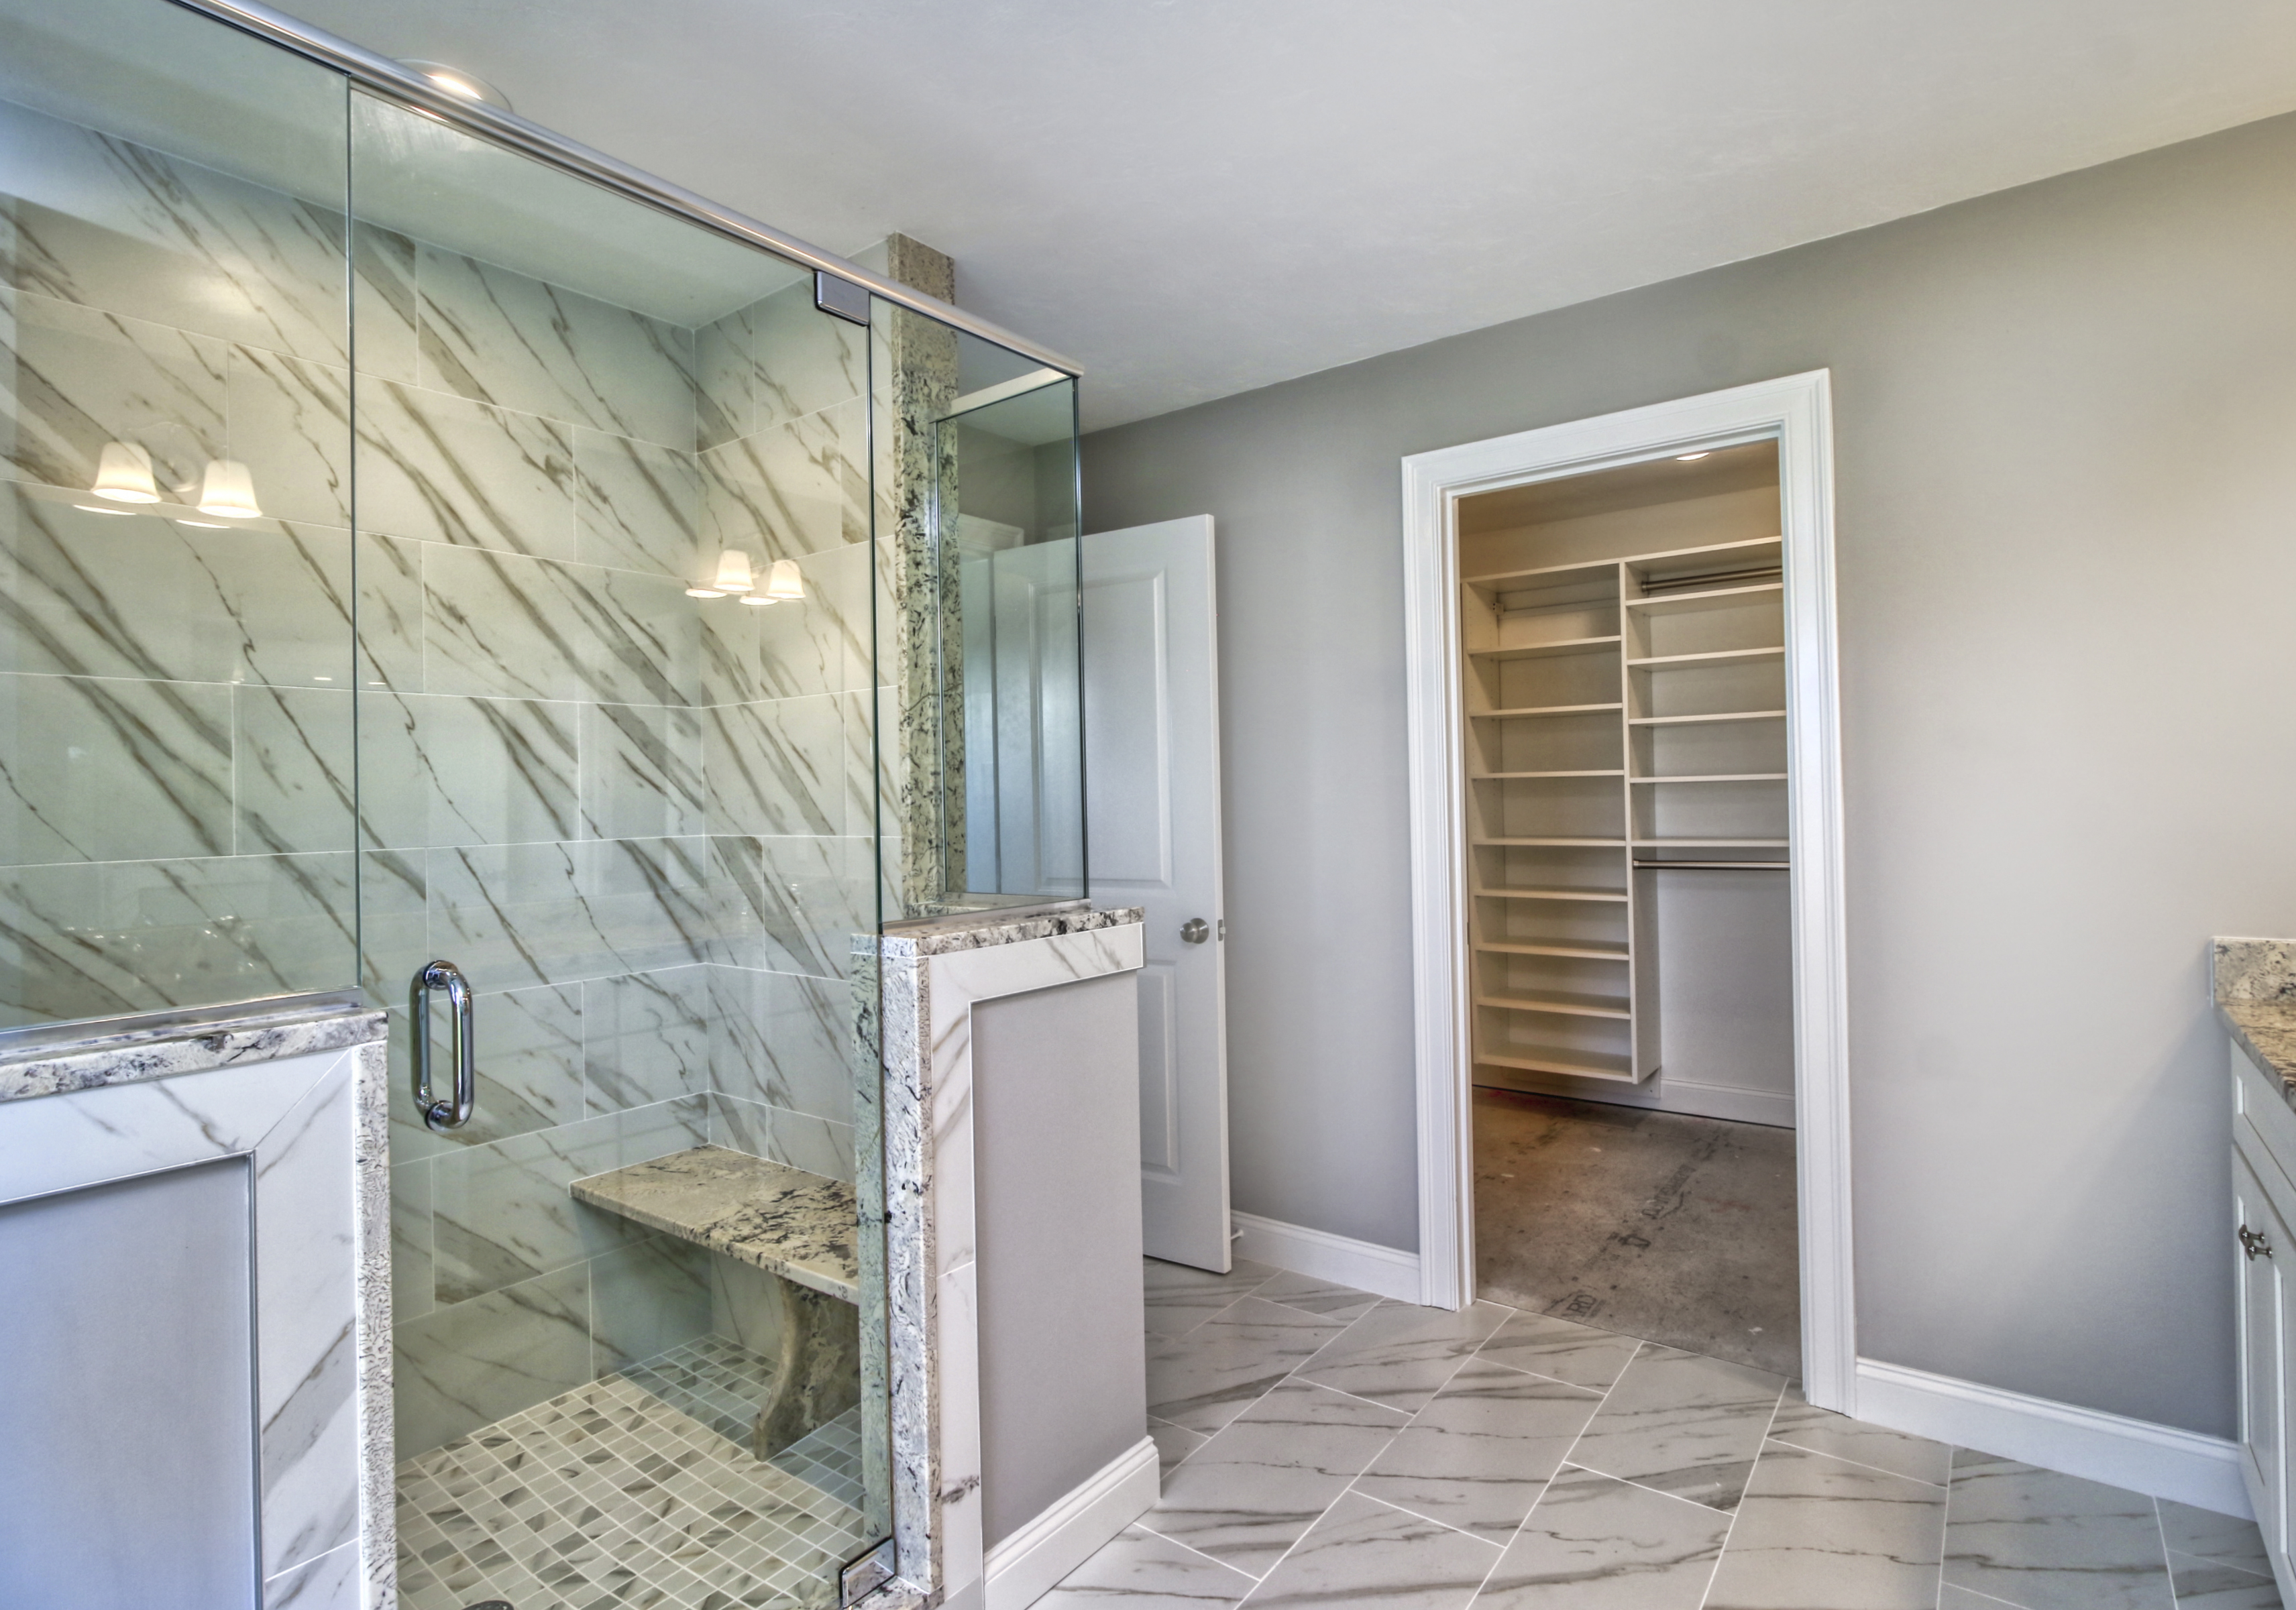 Paste grey bathroom with white accents and glass shower door and walls